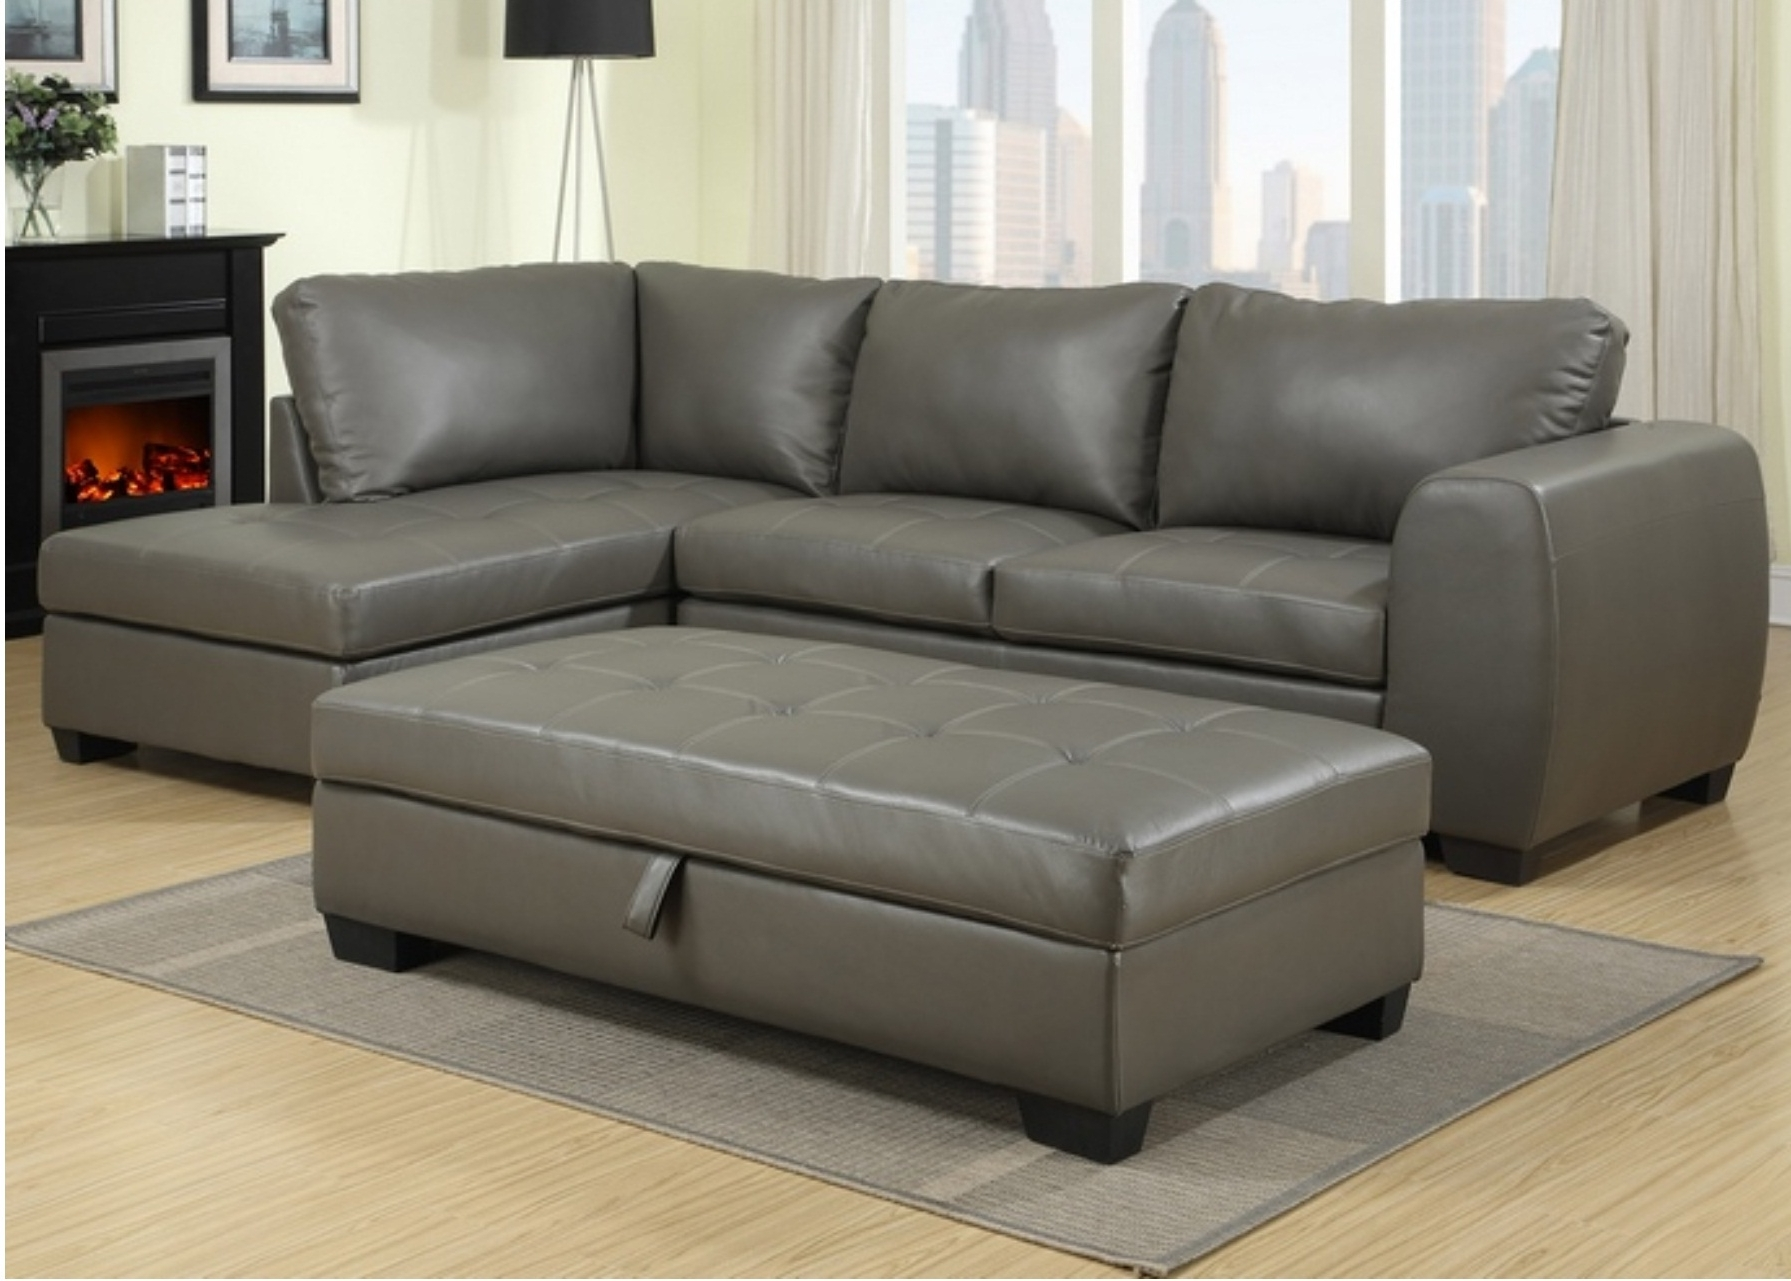 Newest Sectional Couch Bluetonrniture Sets Sofa Inches Day Fiance With Sectional Sofas At Calgary (View 15 of 15)